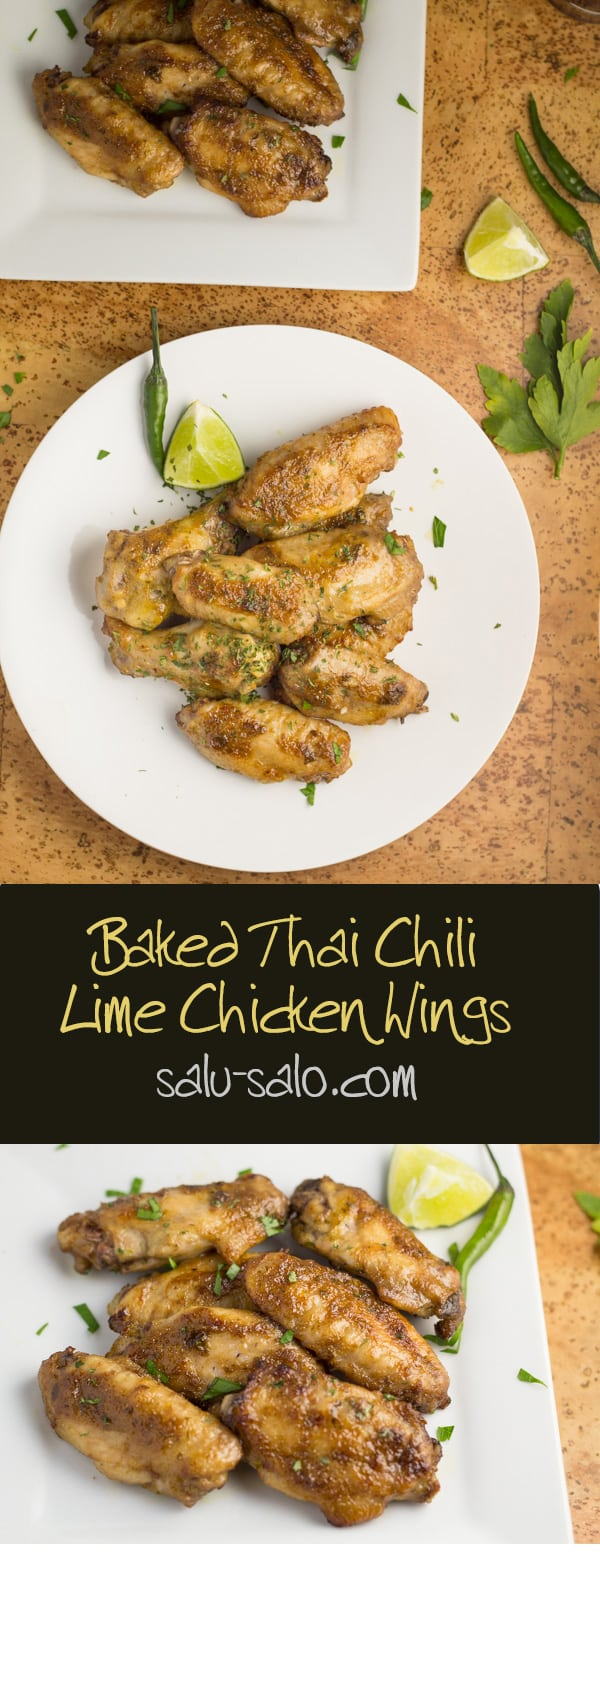 Thai Chili Lime Chicken Wings